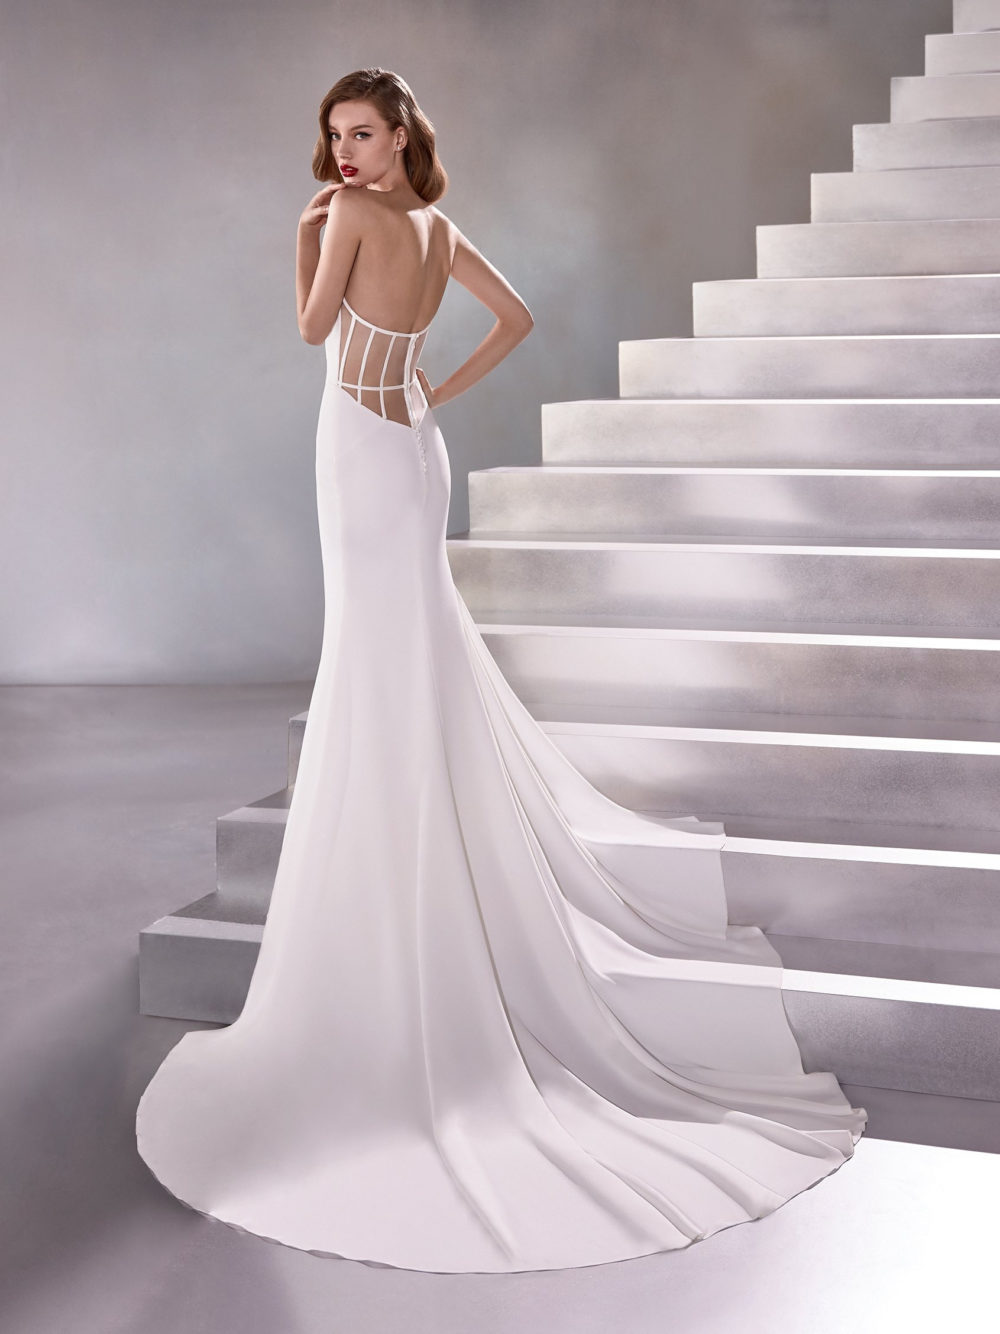 Pronovias Lux Wedding Gown Dress 2020 Atelier Collection Full Back